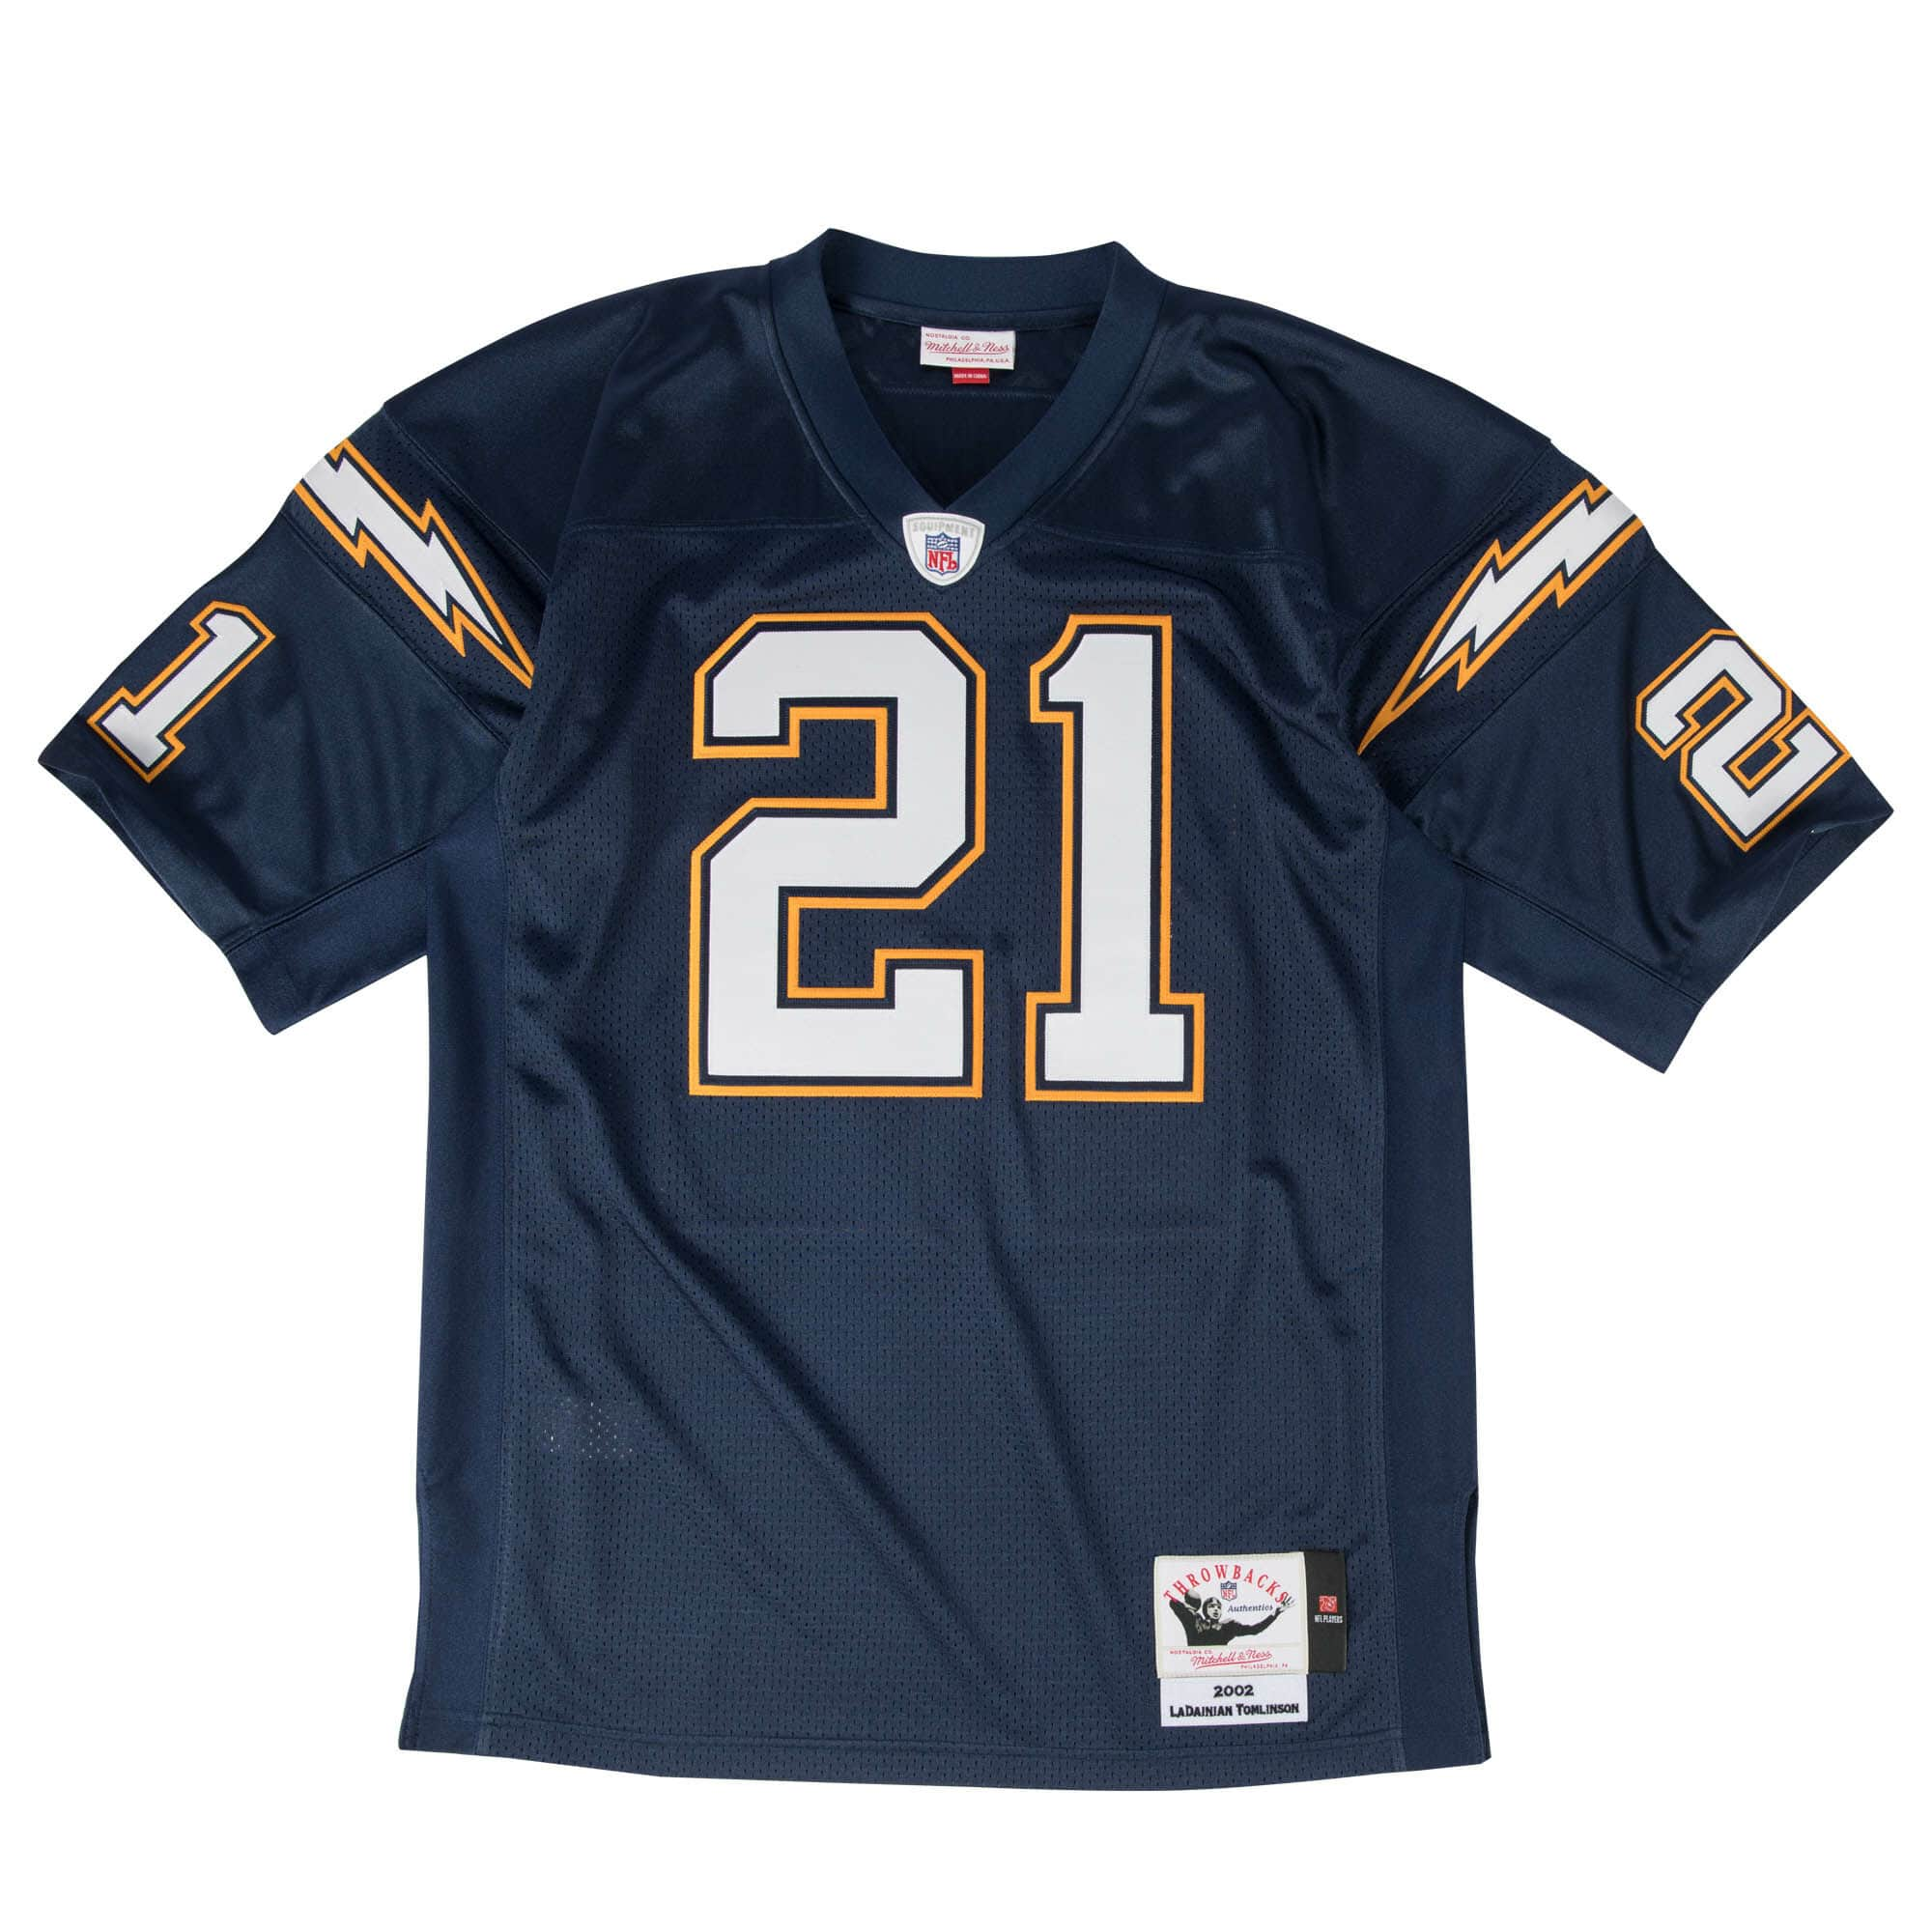 LaDainian Tomlinson Authentic Jersey 2002 San Diego Chargers